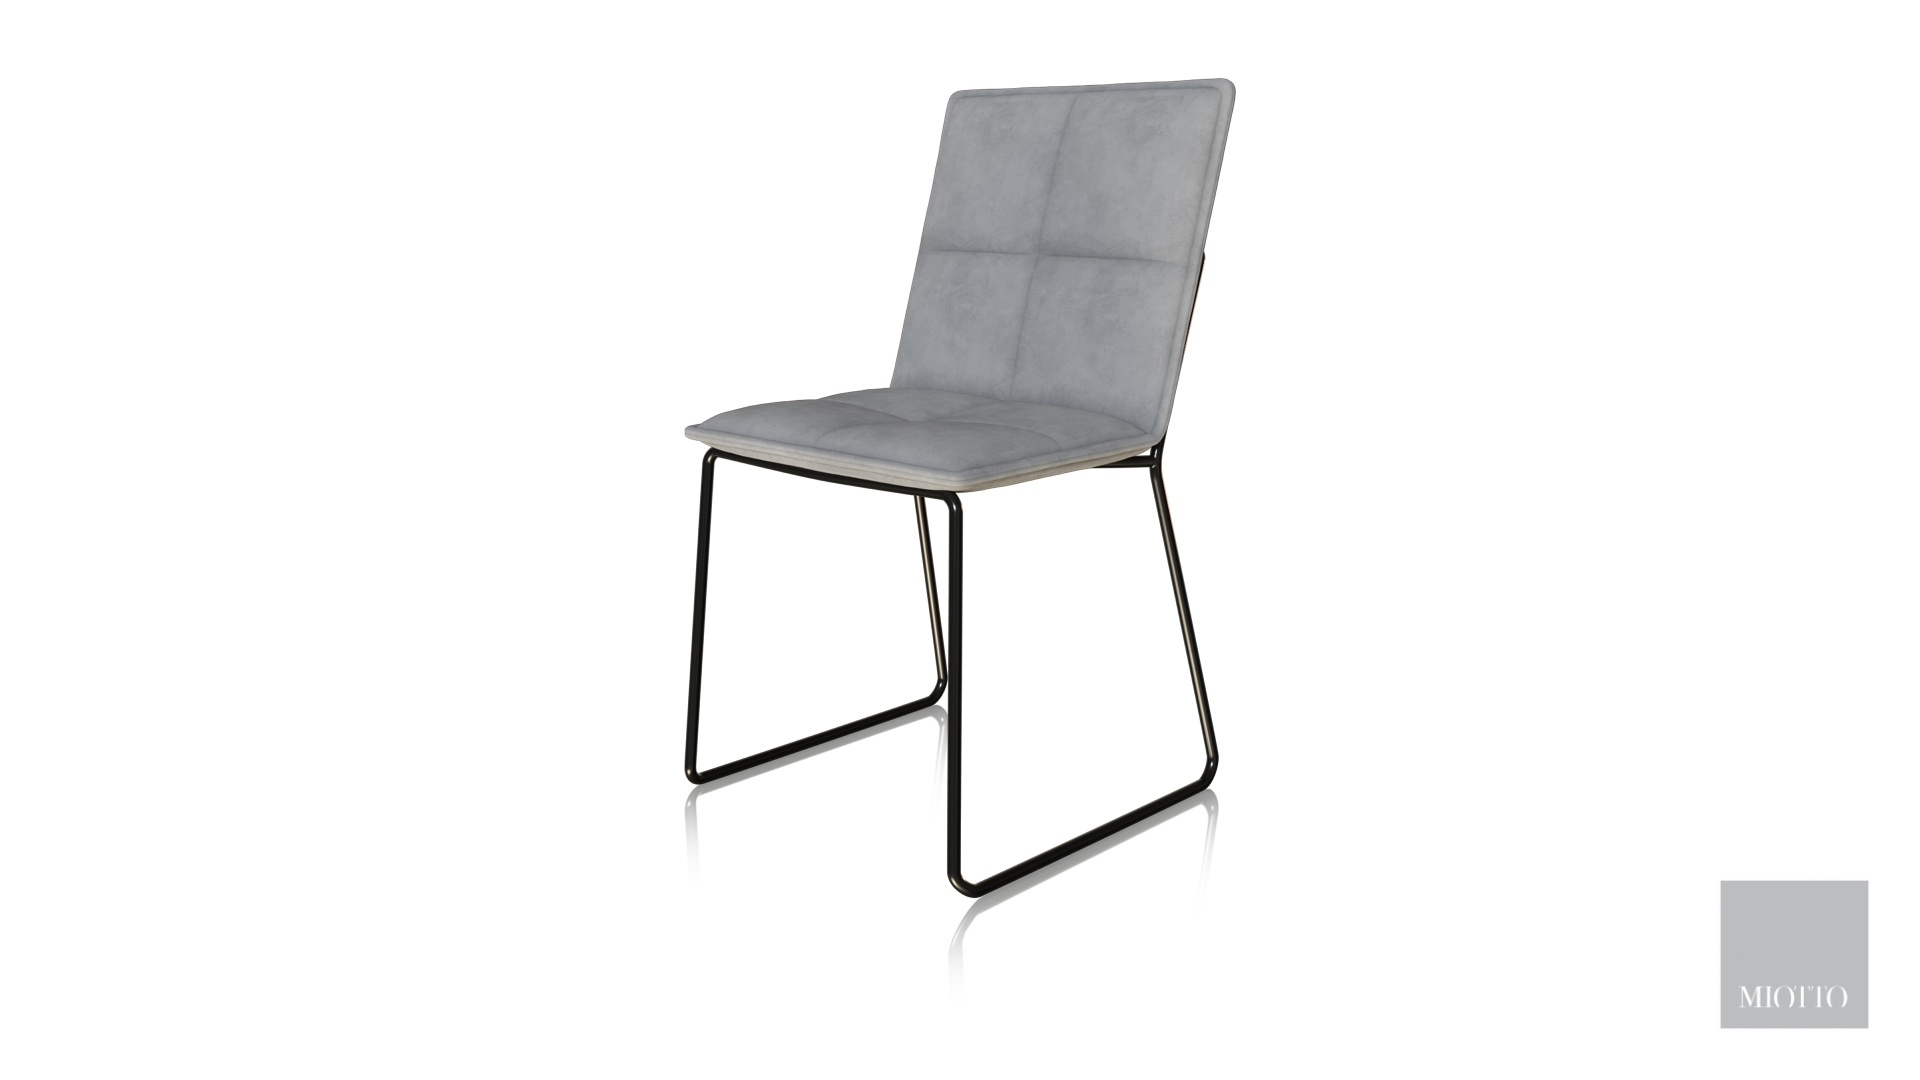 miotto_dateo dining chair grey miotto dining furniture t